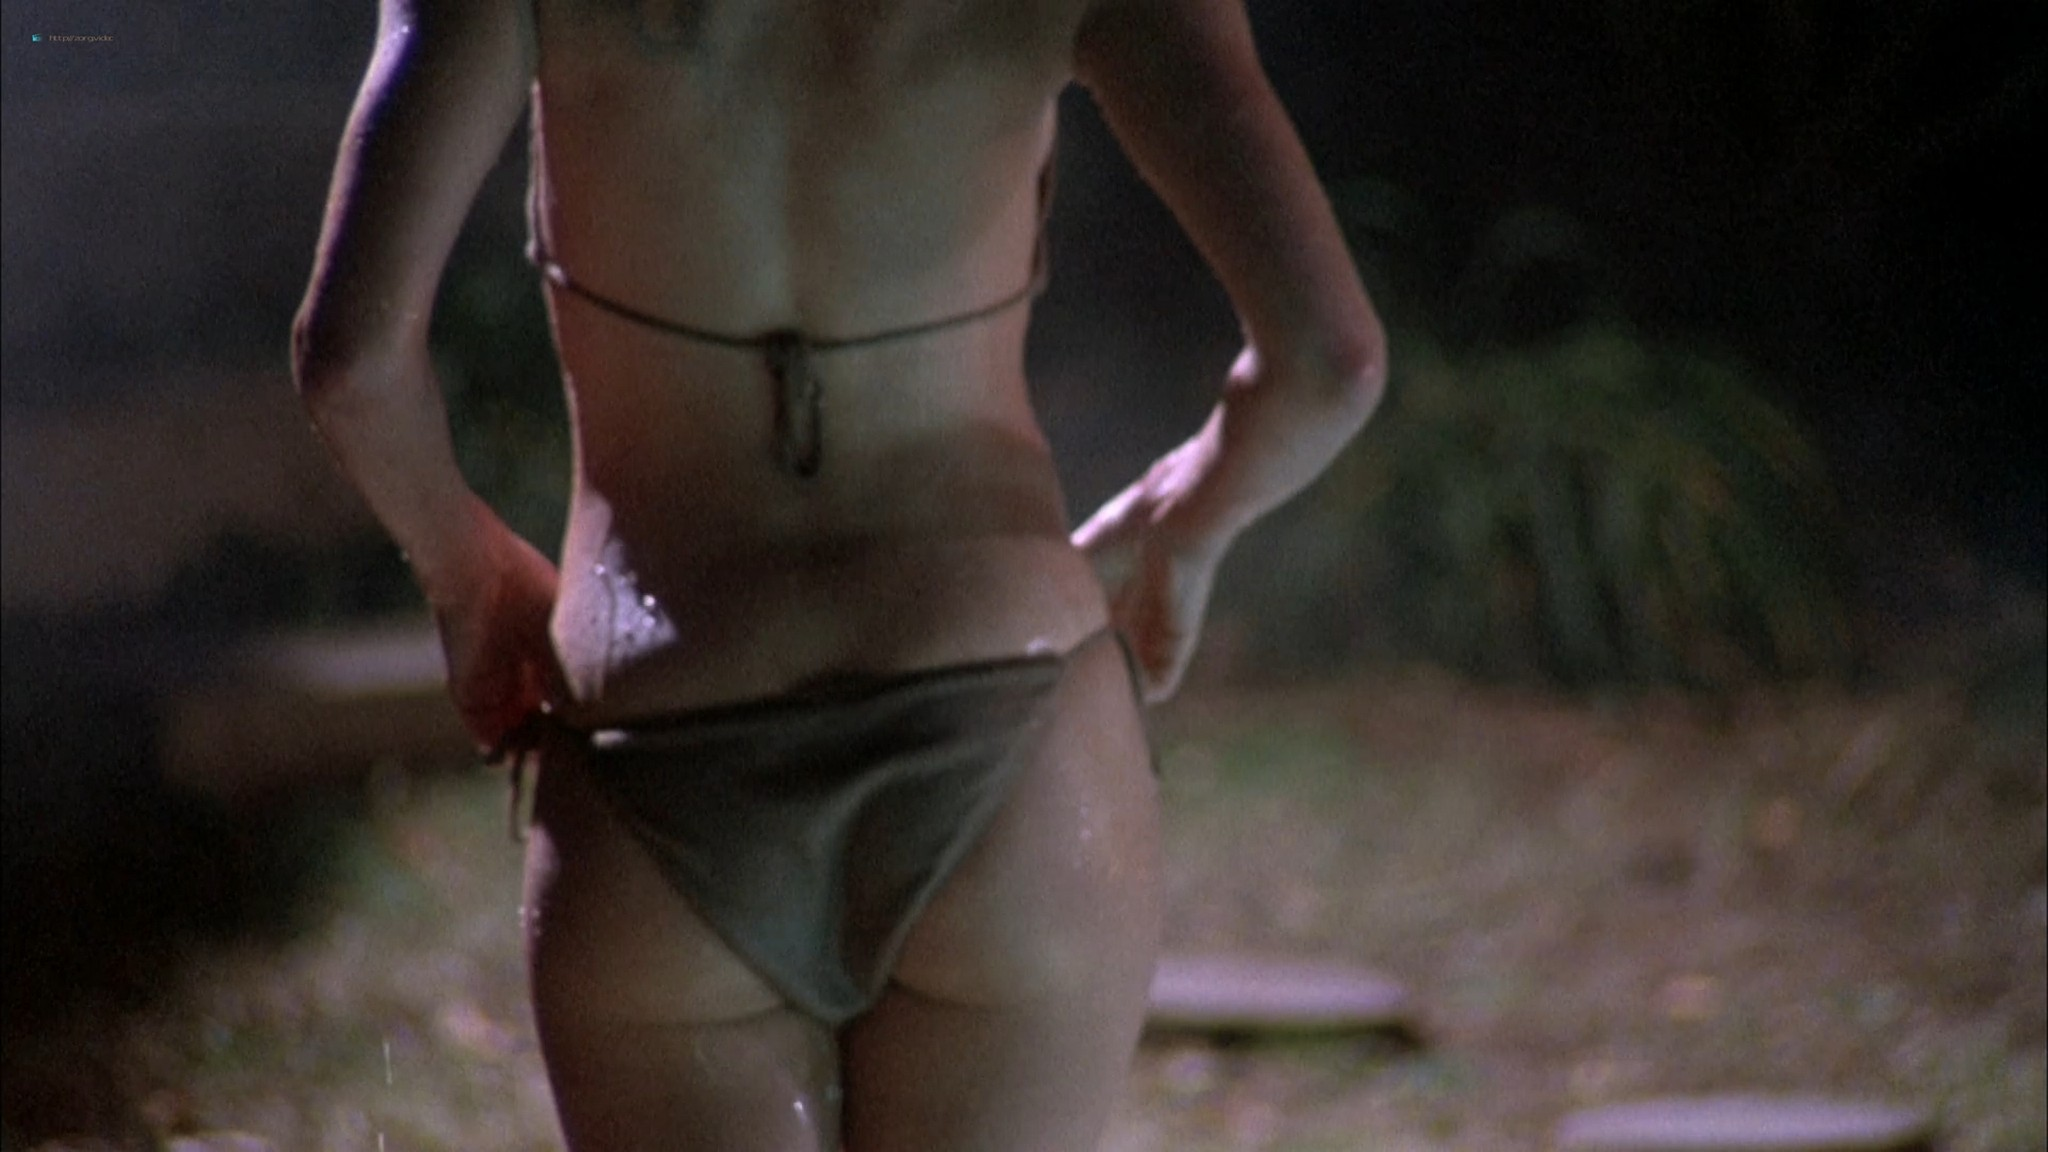 Kari Wuhrer wet and hot Amy Lindsay and others nude sex - Final Examination (2003) HD 1080p Web (6)